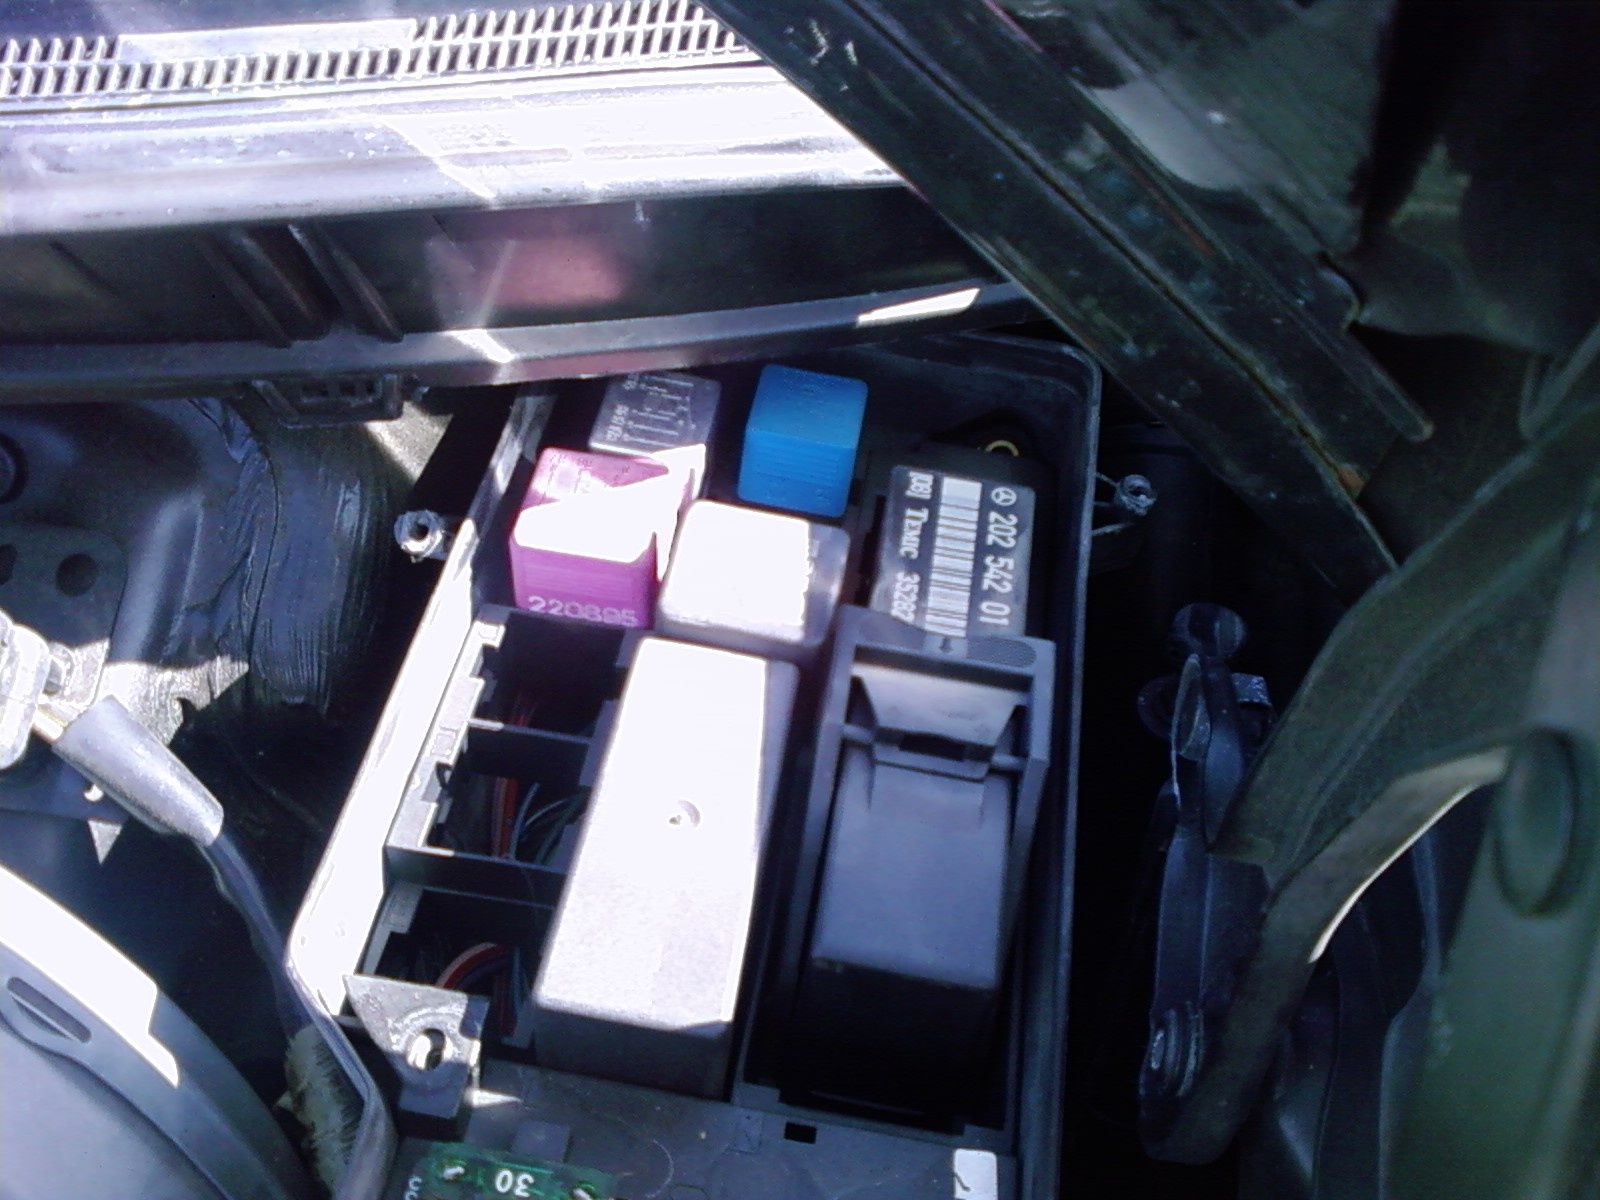 F15fuse Box Bmw 3 Series Questions My Windows Go Down And Sunroof